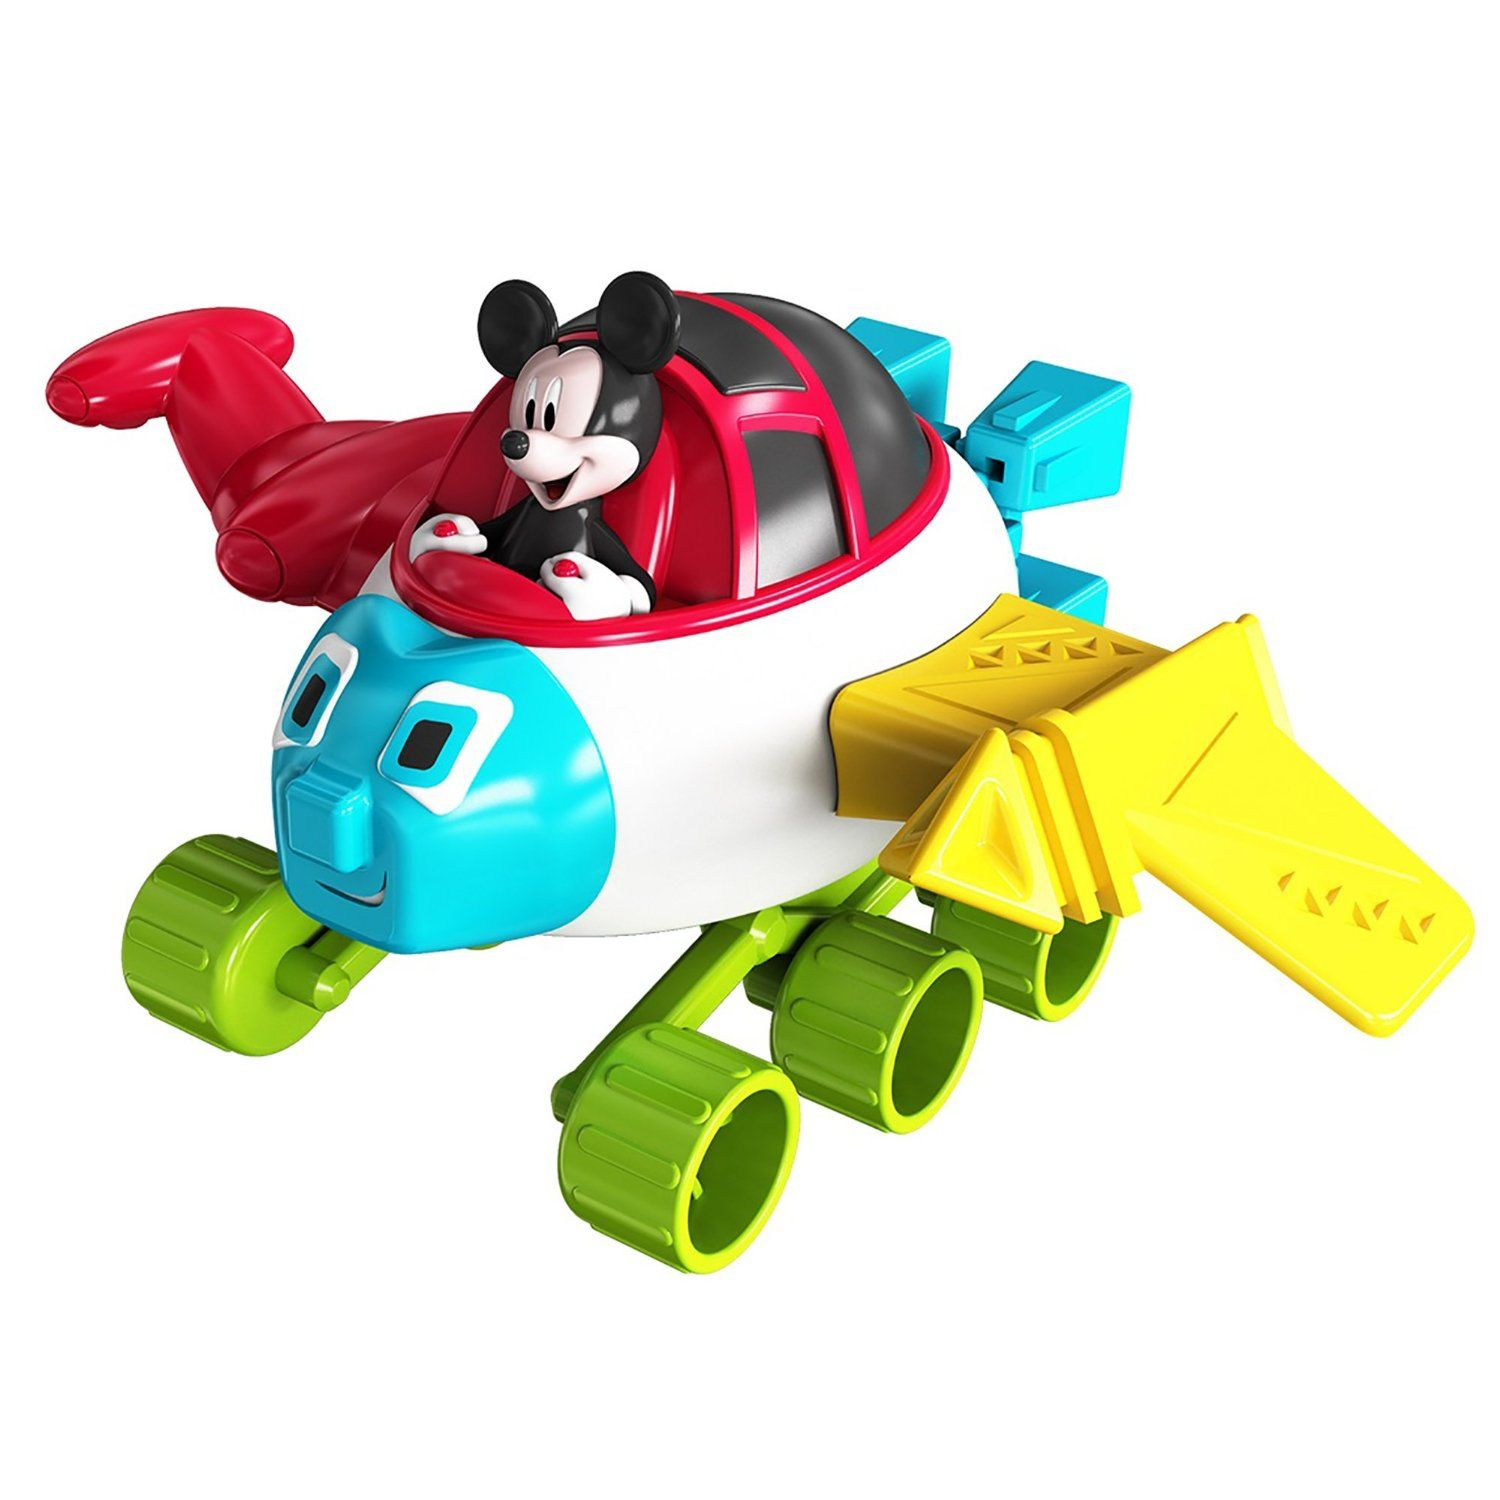 IMagicademy Rocket Builder Playset Mickey Mouse Building Set by KIDdesigns